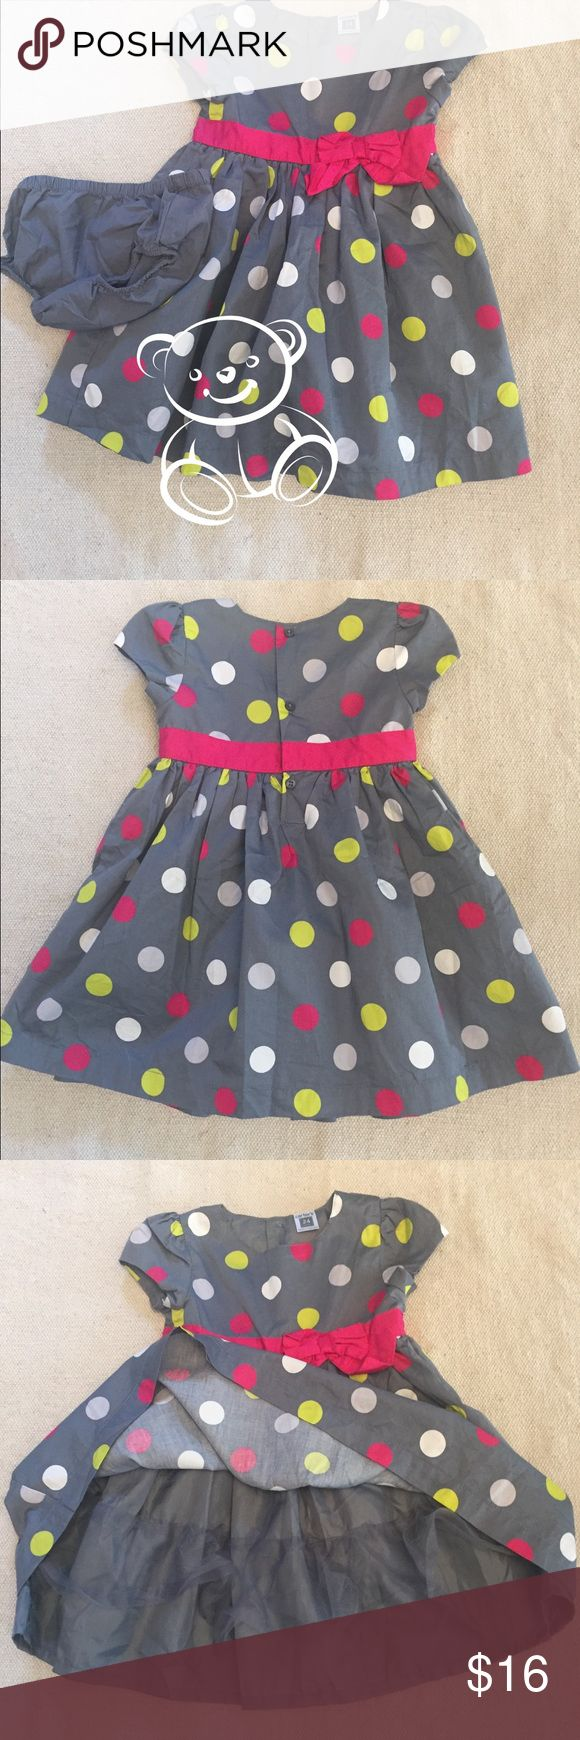 Girl's Polka Dot Party Dress Grey dress with light grey, pink and lime polka dots. Hot pink trim and bow at the waist. Dress is fully lined. Cap sleeves. Carter's Dresses Formal